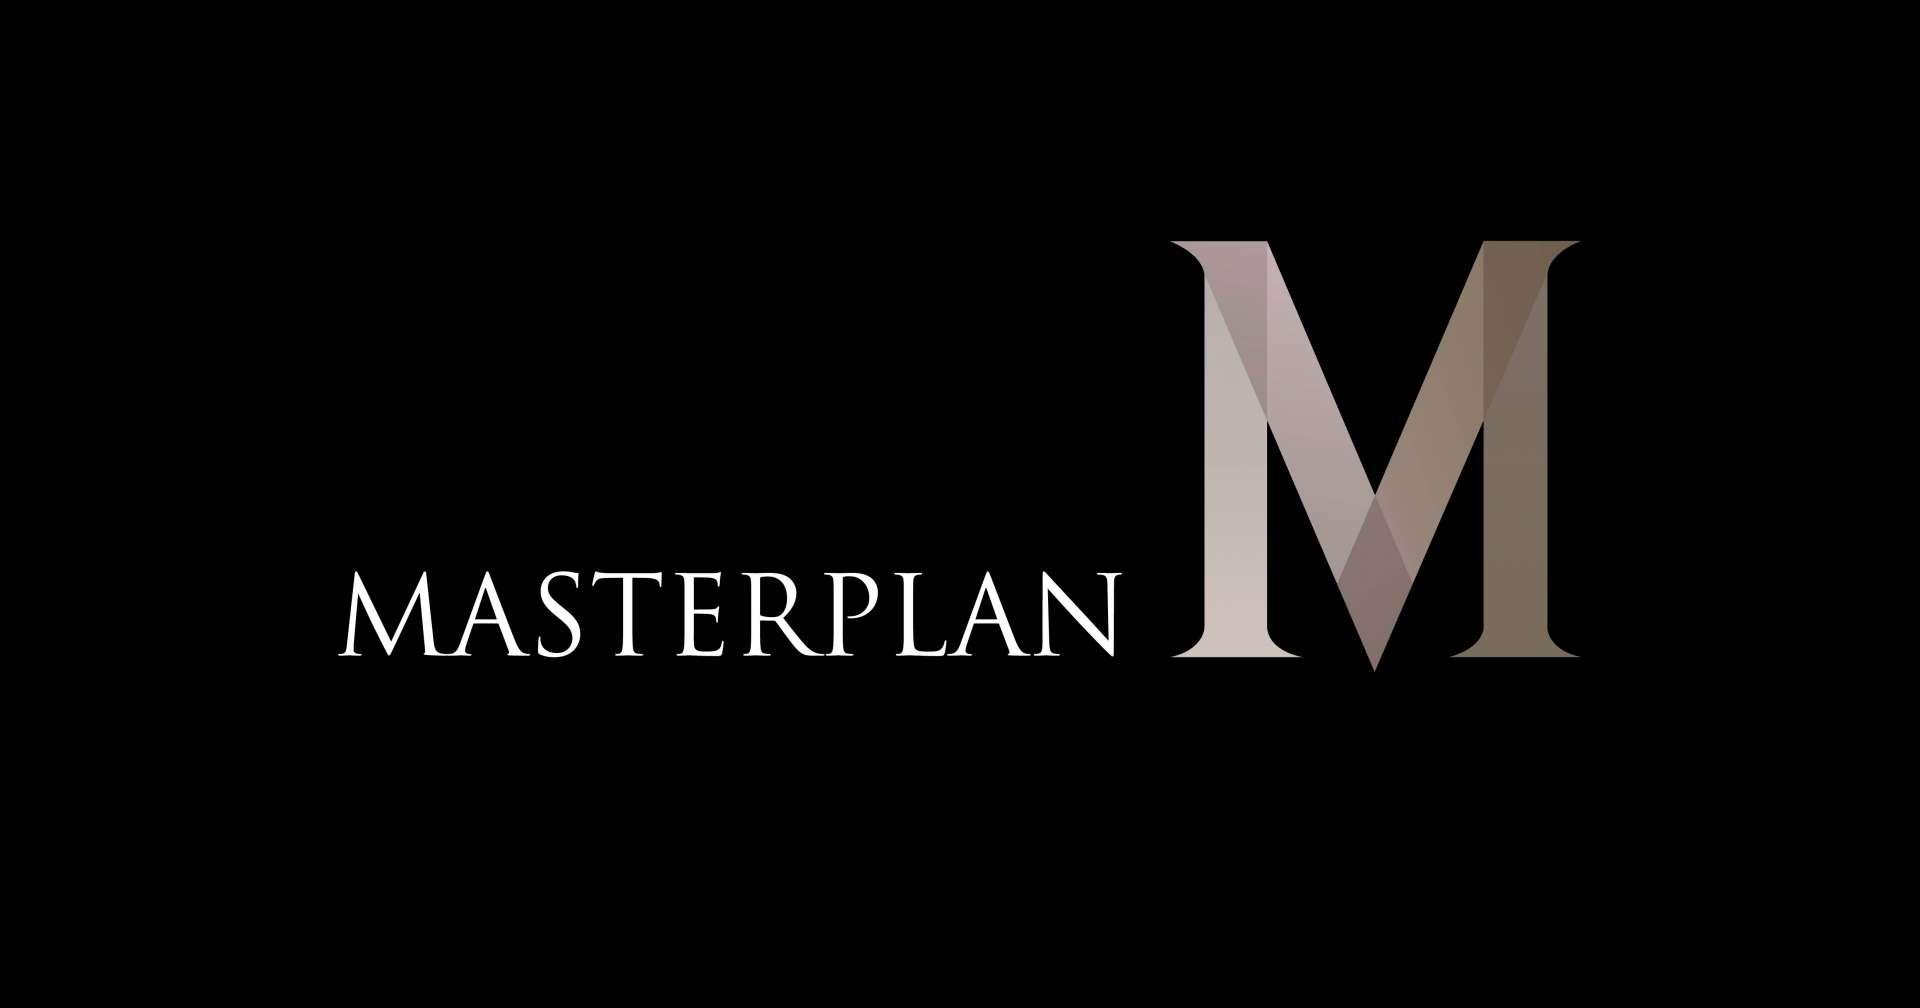 Masterplan BuildersThe moment you have been waiting for, a